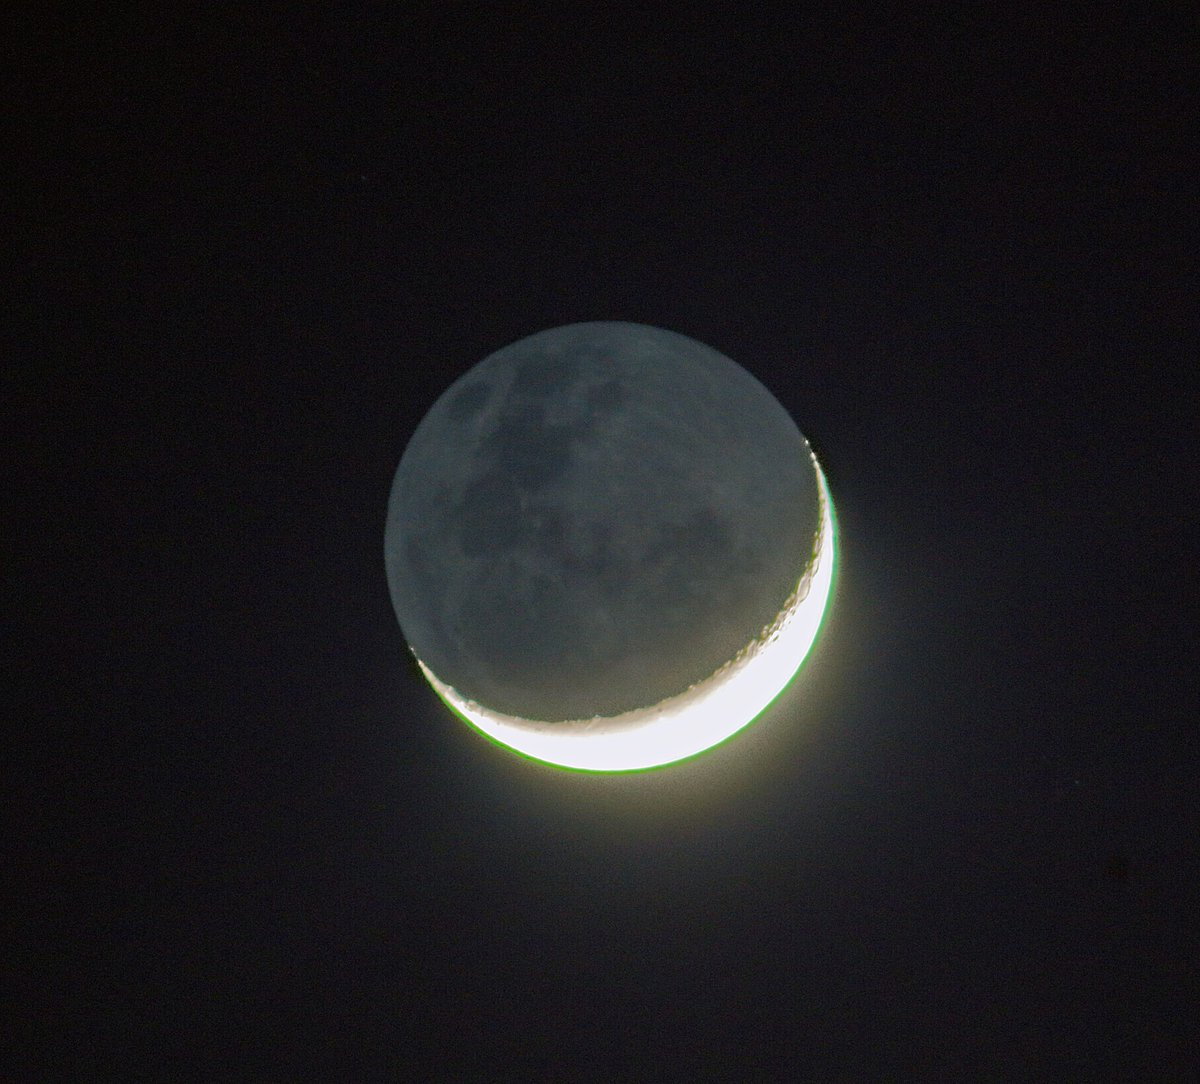 Old Moon In New Moons Arms >> Ian Griffin On Twitter Old Moon In New Moons Arms Made Me Smile As